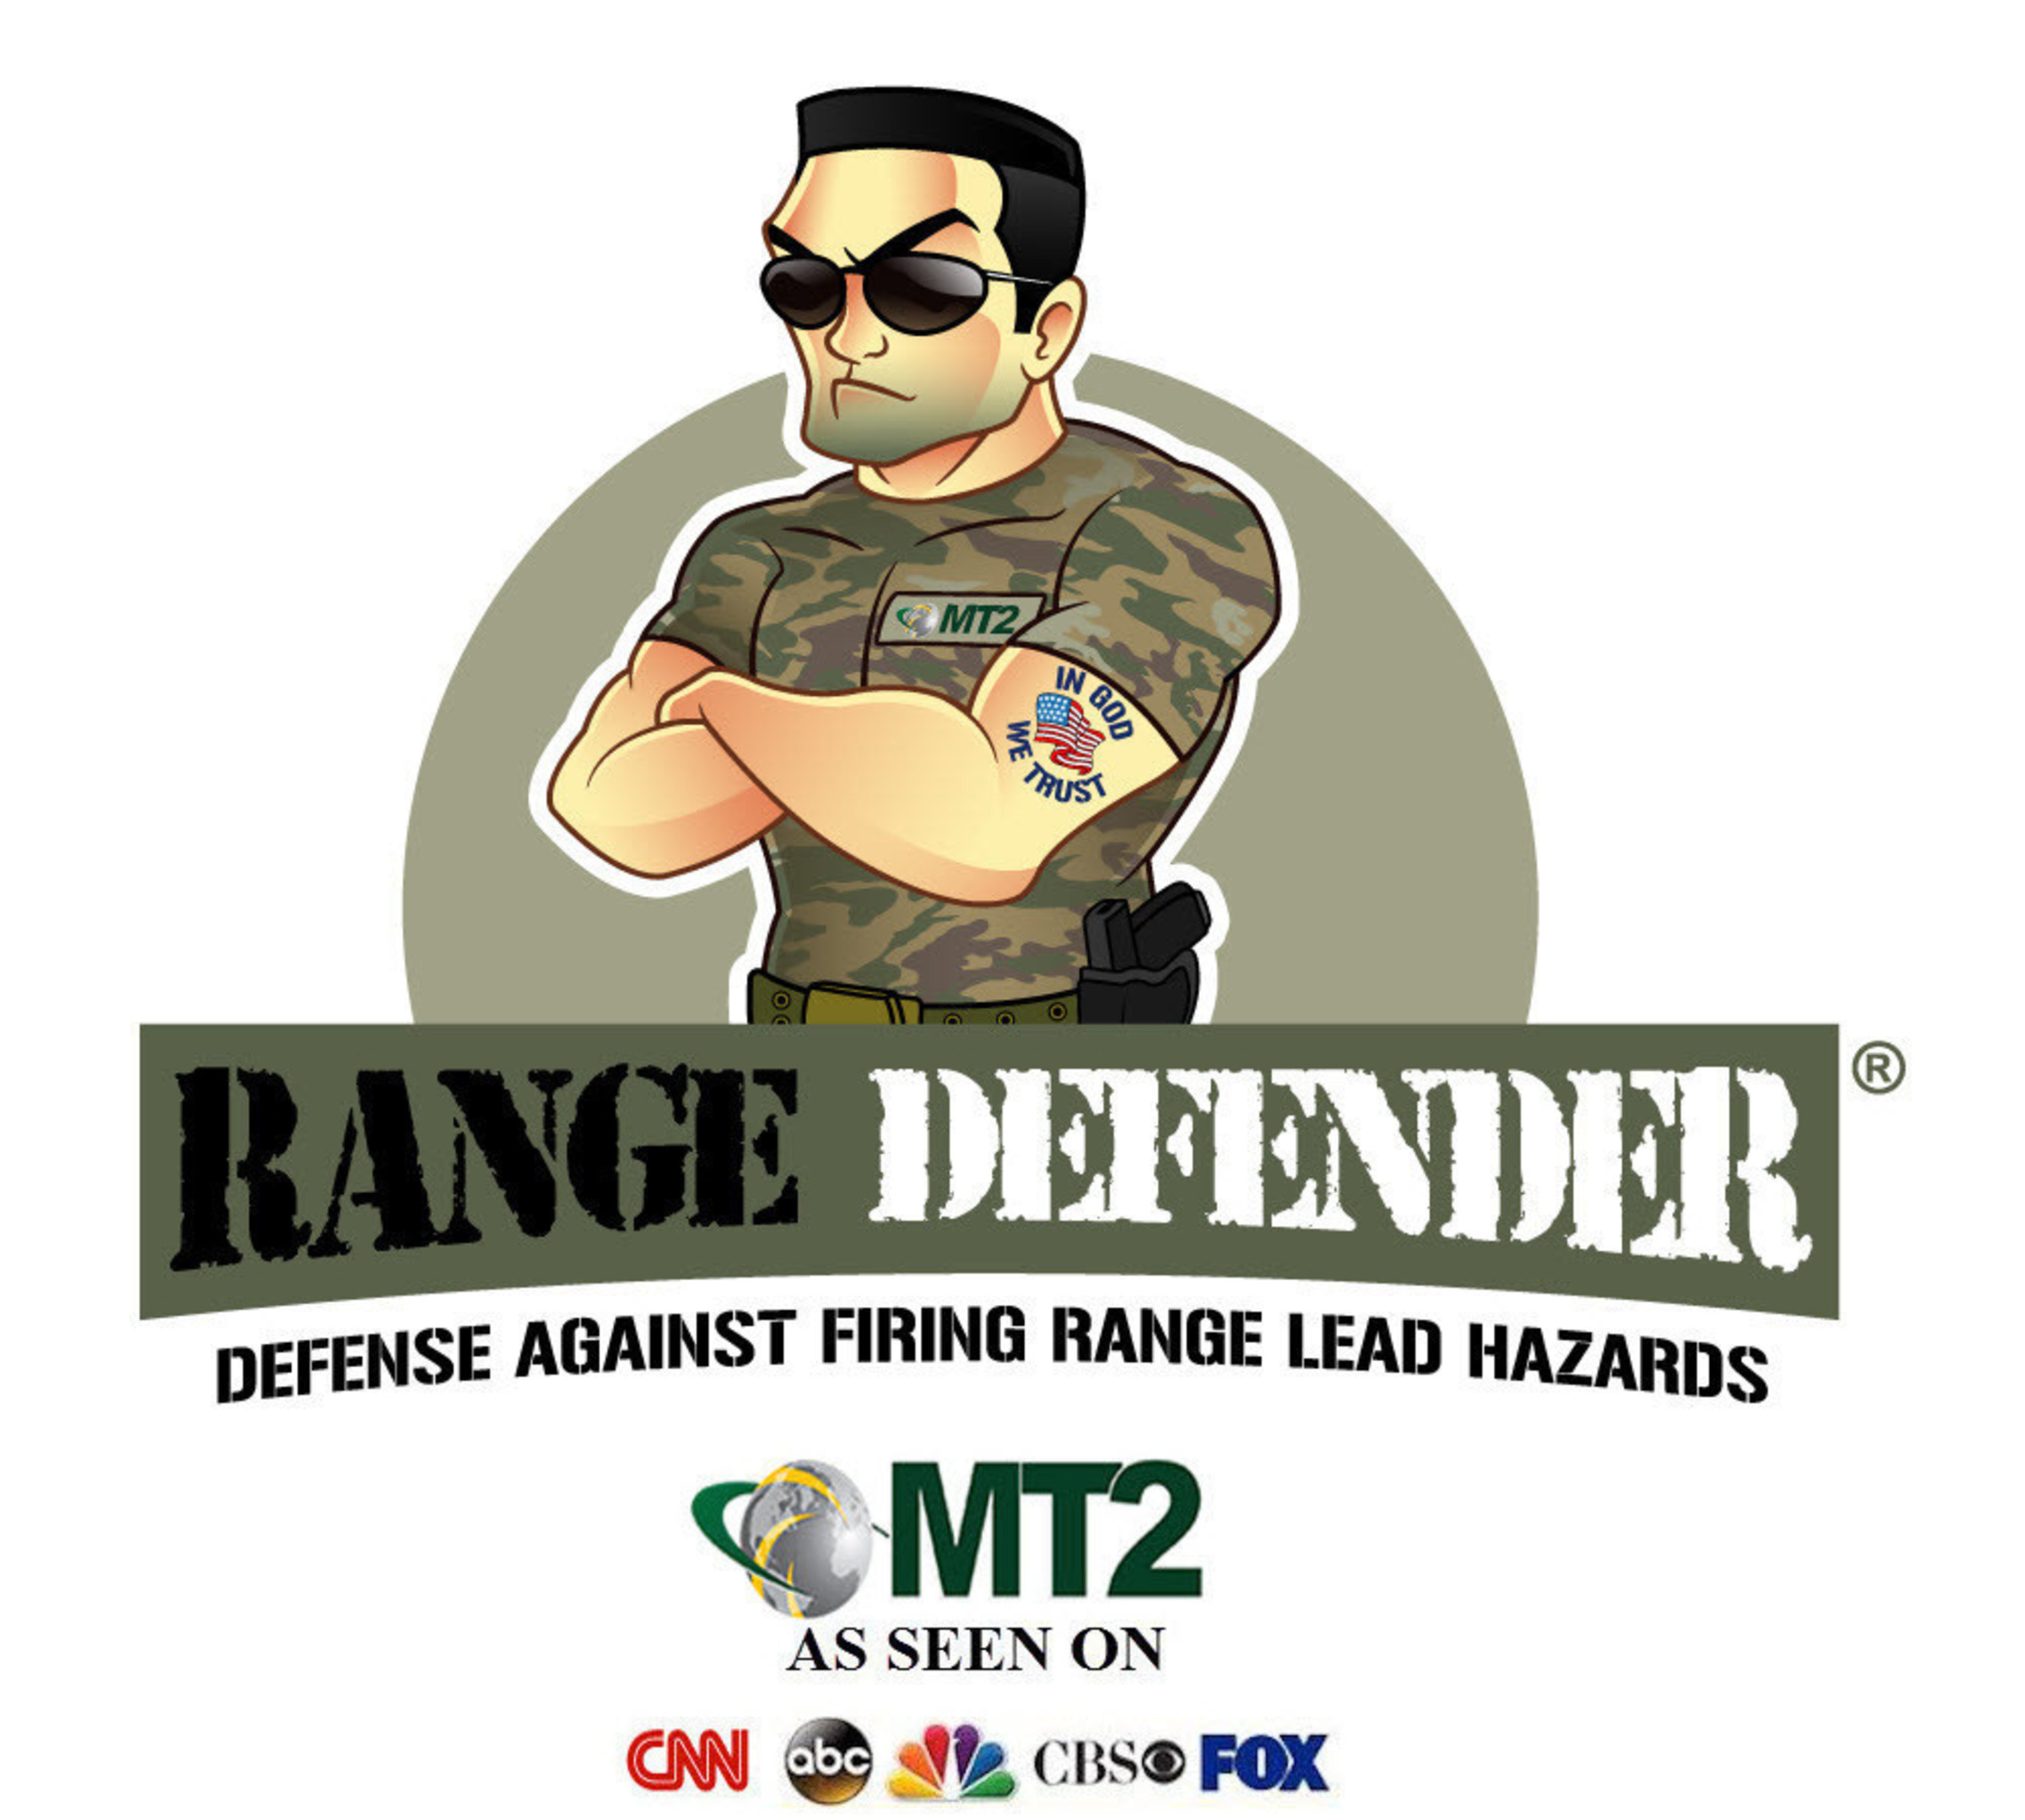 MT2 Announced as Sponsor of NSSF Lead Management & OSHA Compliance Workshop at the 2016 SHOT Show